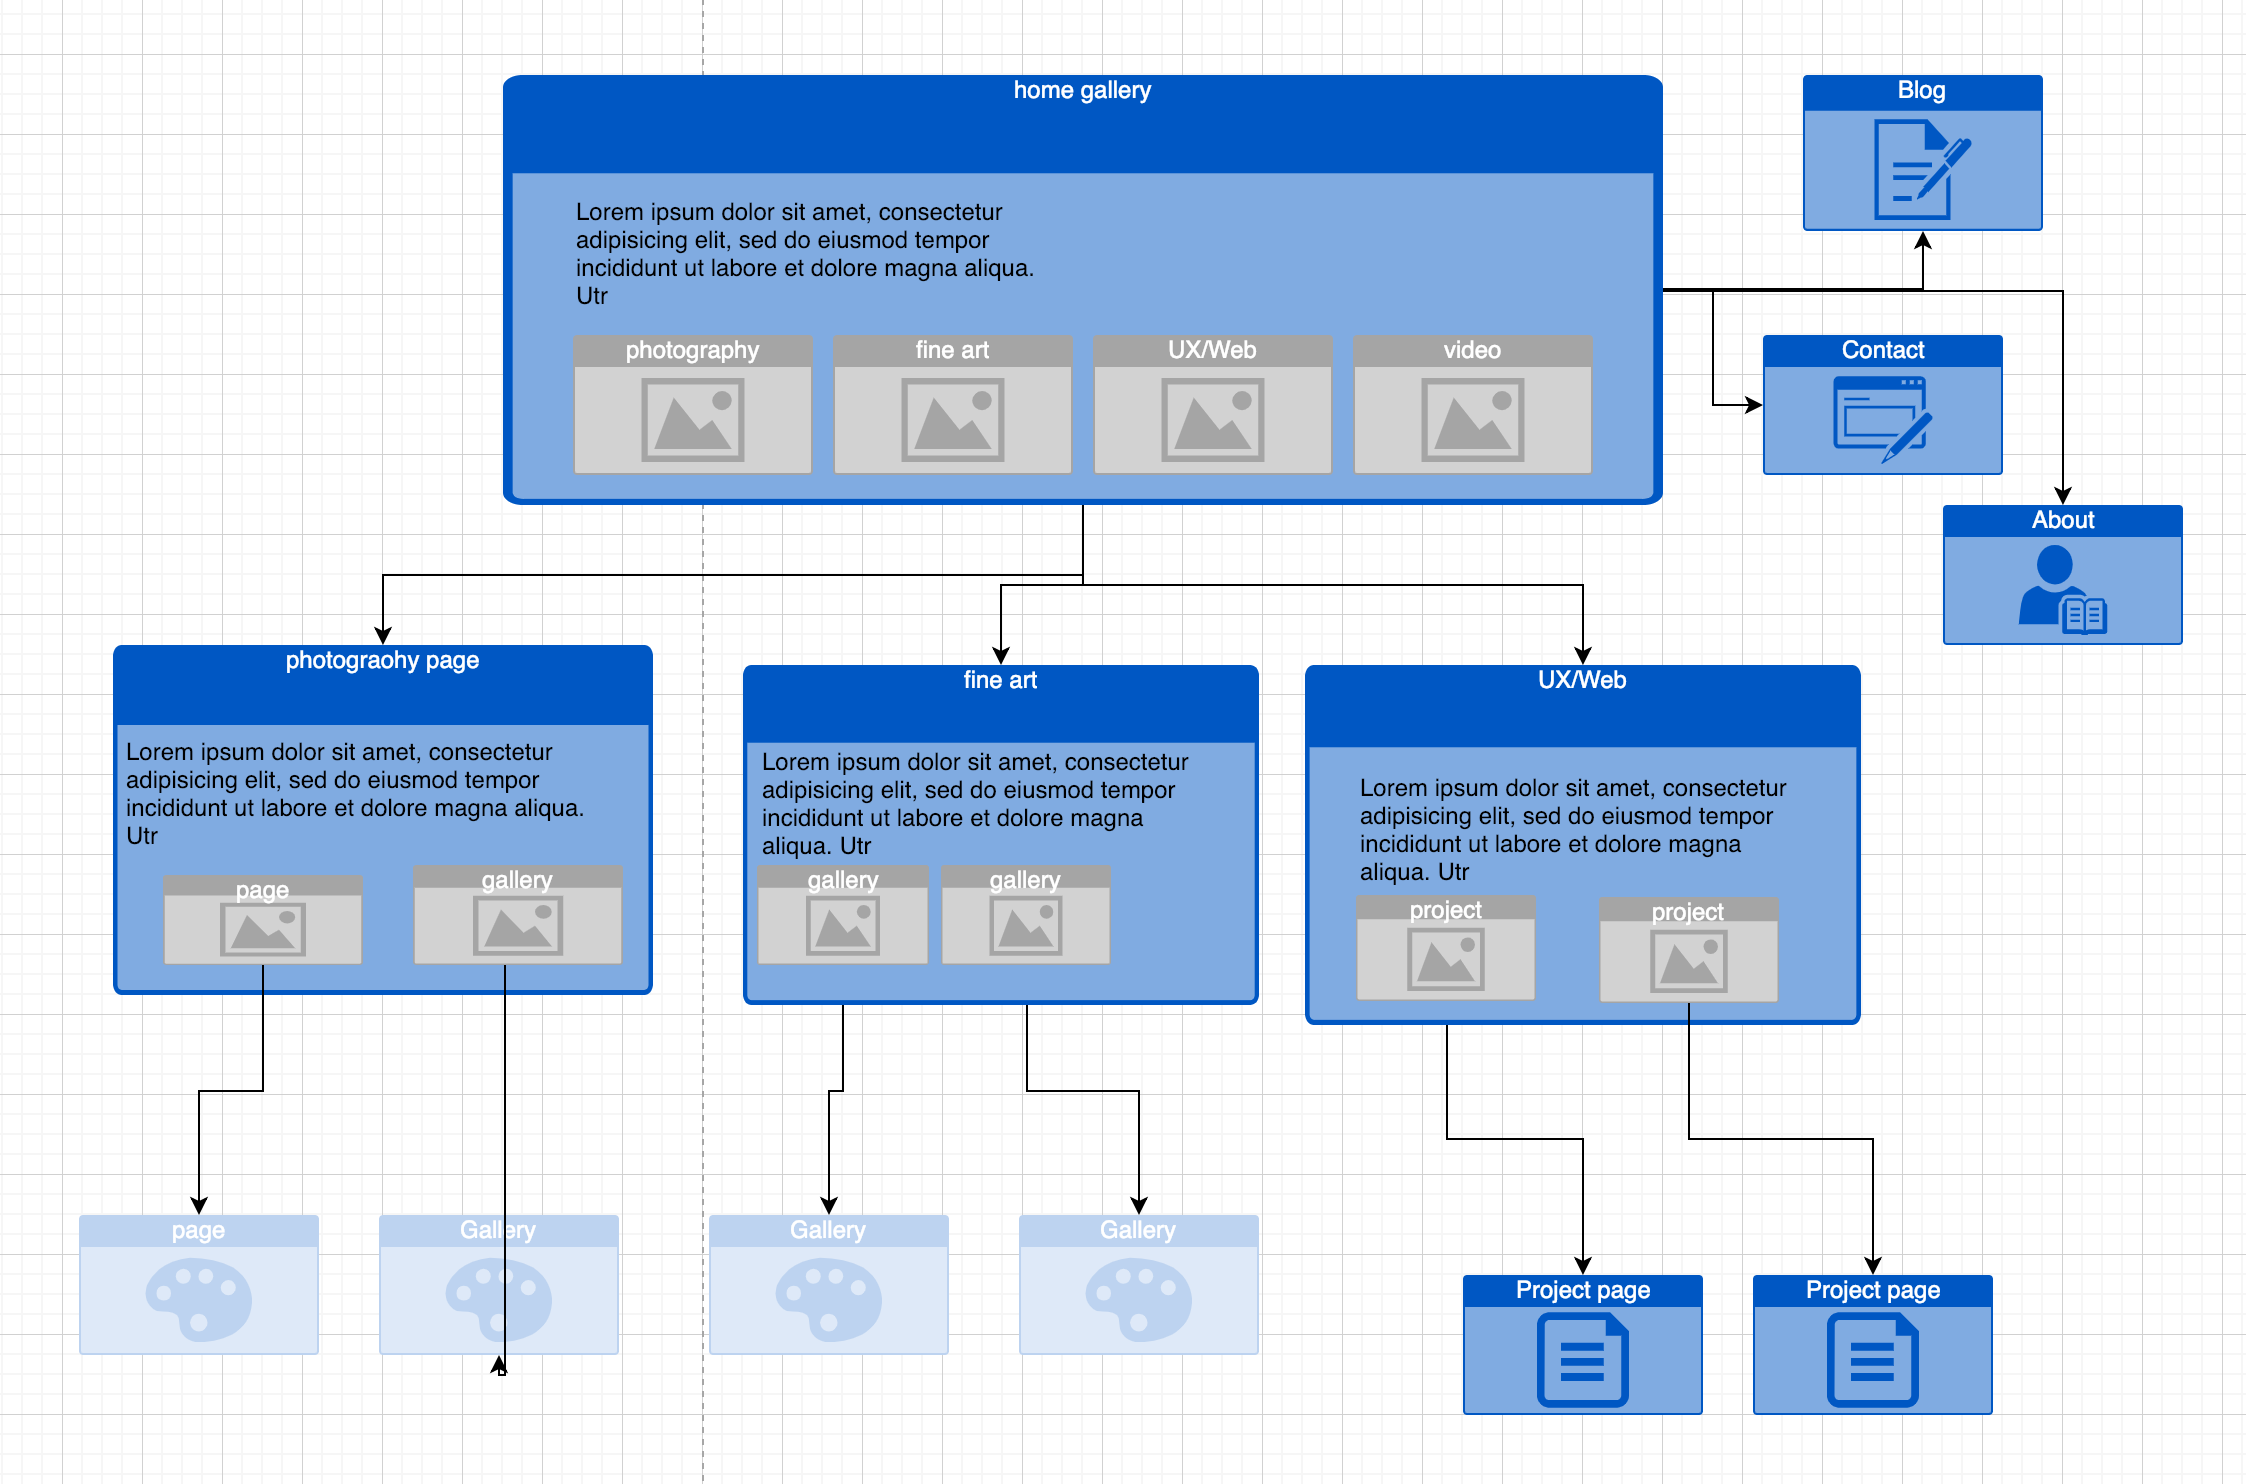 Site map for my new portfolio site. Nested galleries are not possible with Adobe Portfolio.